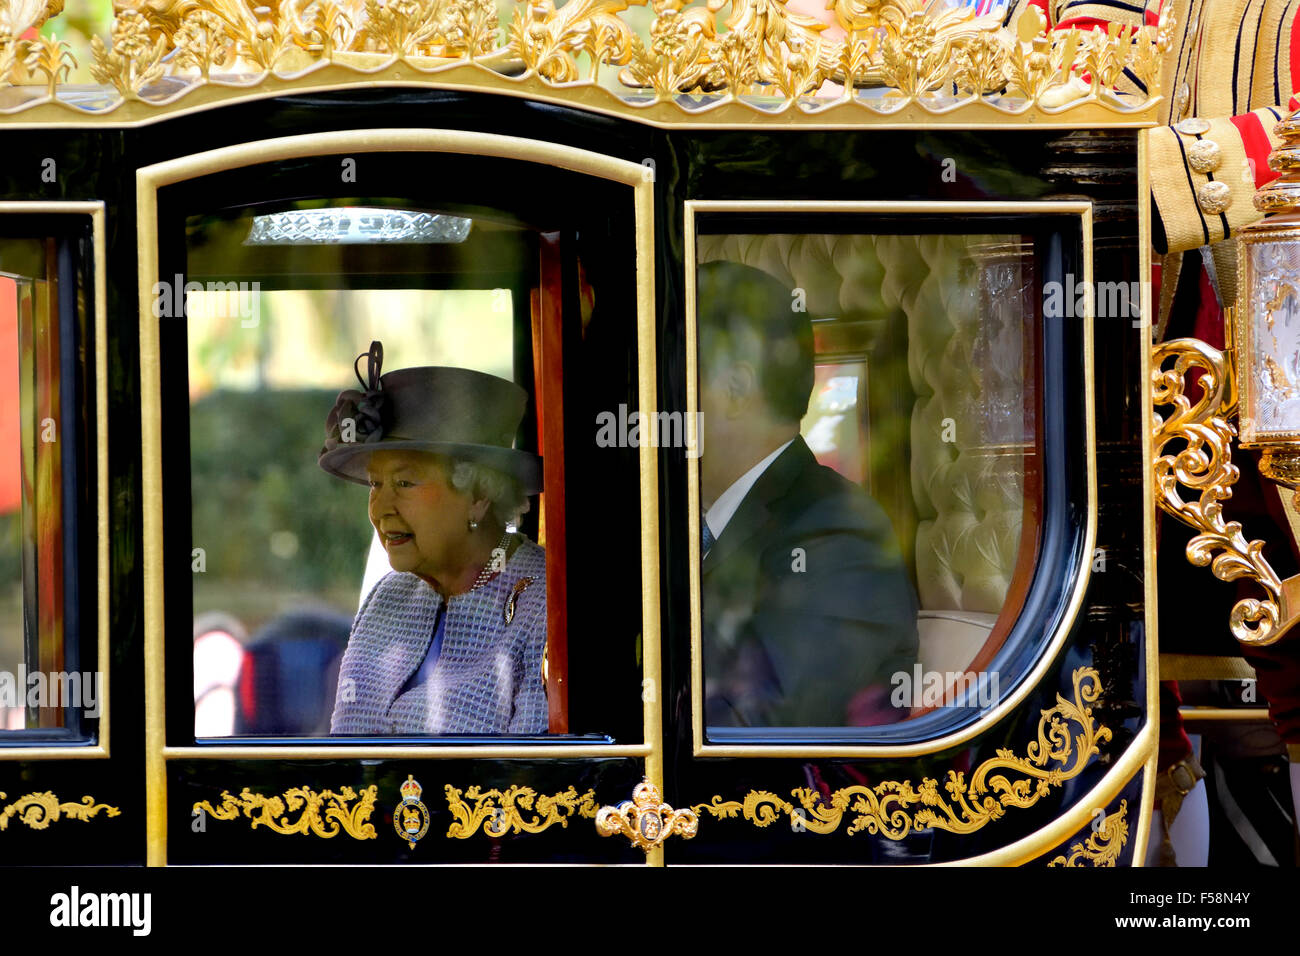 London Oct 20th 2015. Queen Elizabeth II and Xi Jinping in the 'Britania' carriage in the Mall - Stock Image